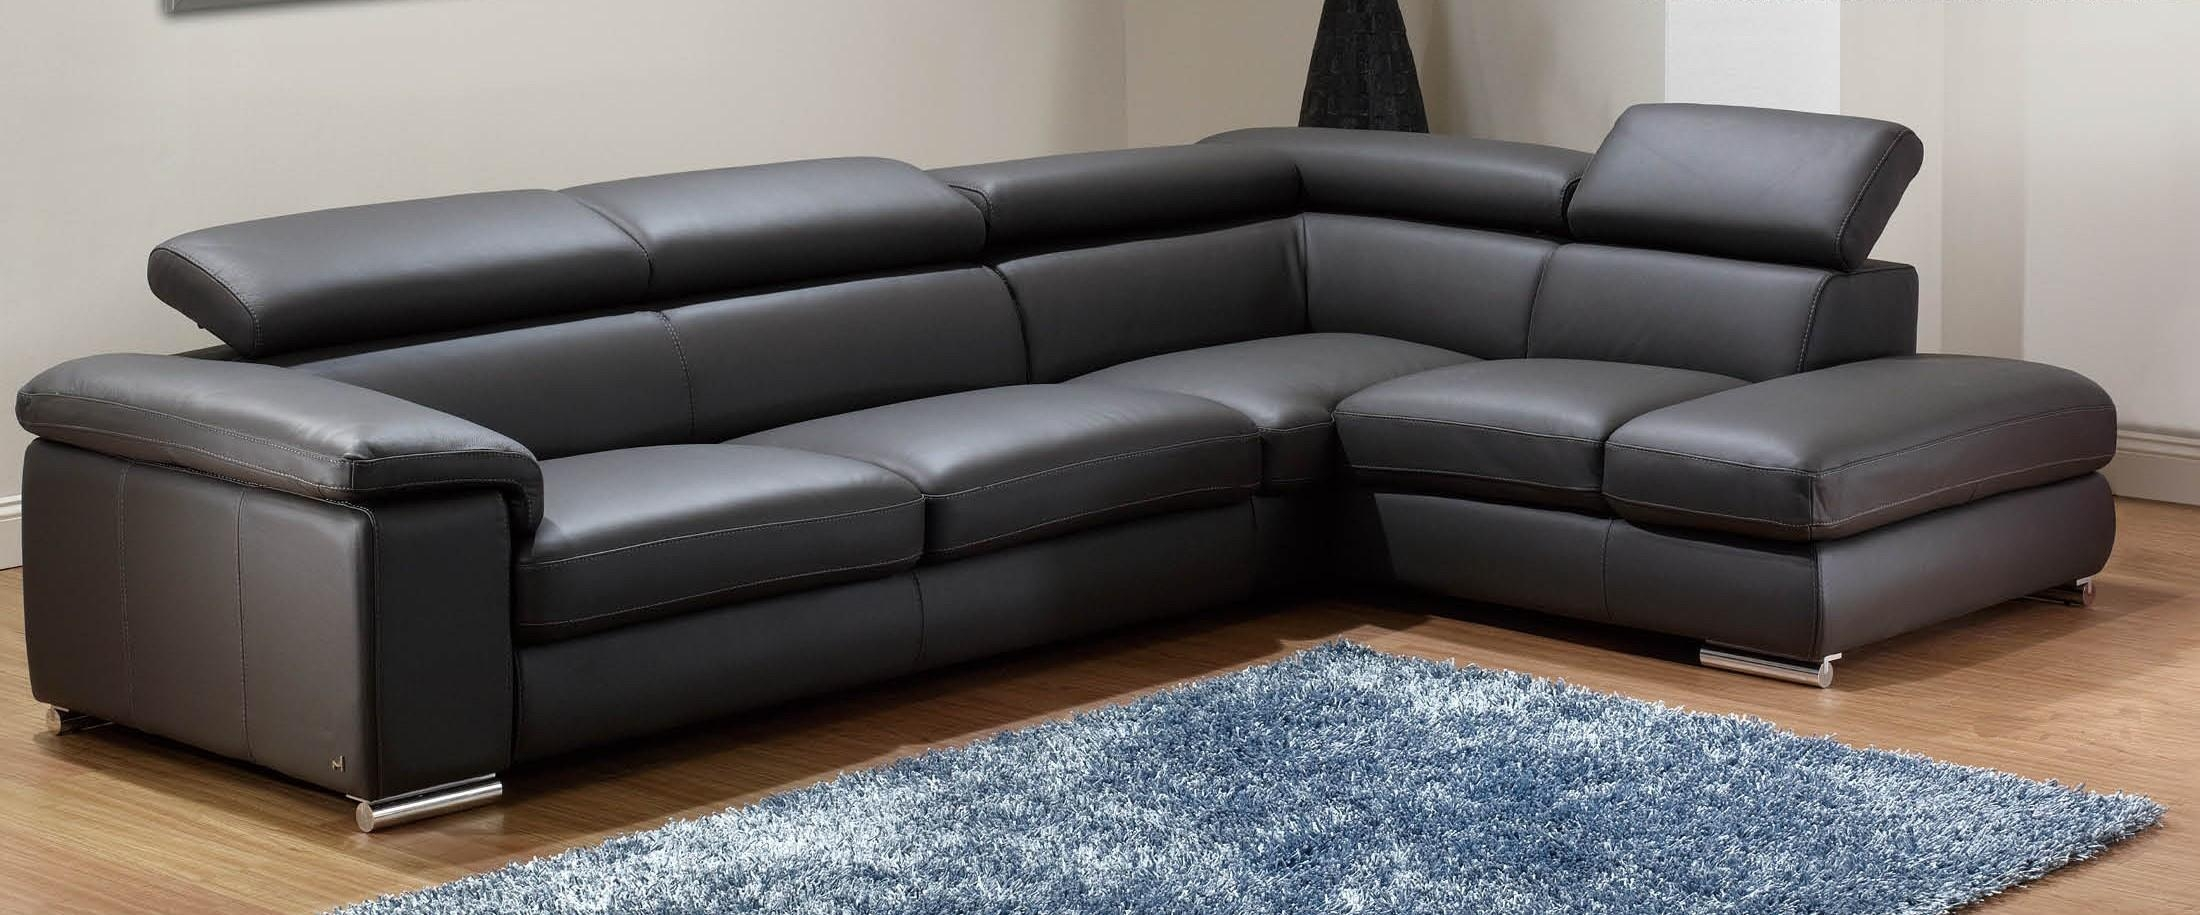 loveseat sleeper sofa leather l size cover 21 collection of black sectional sofas